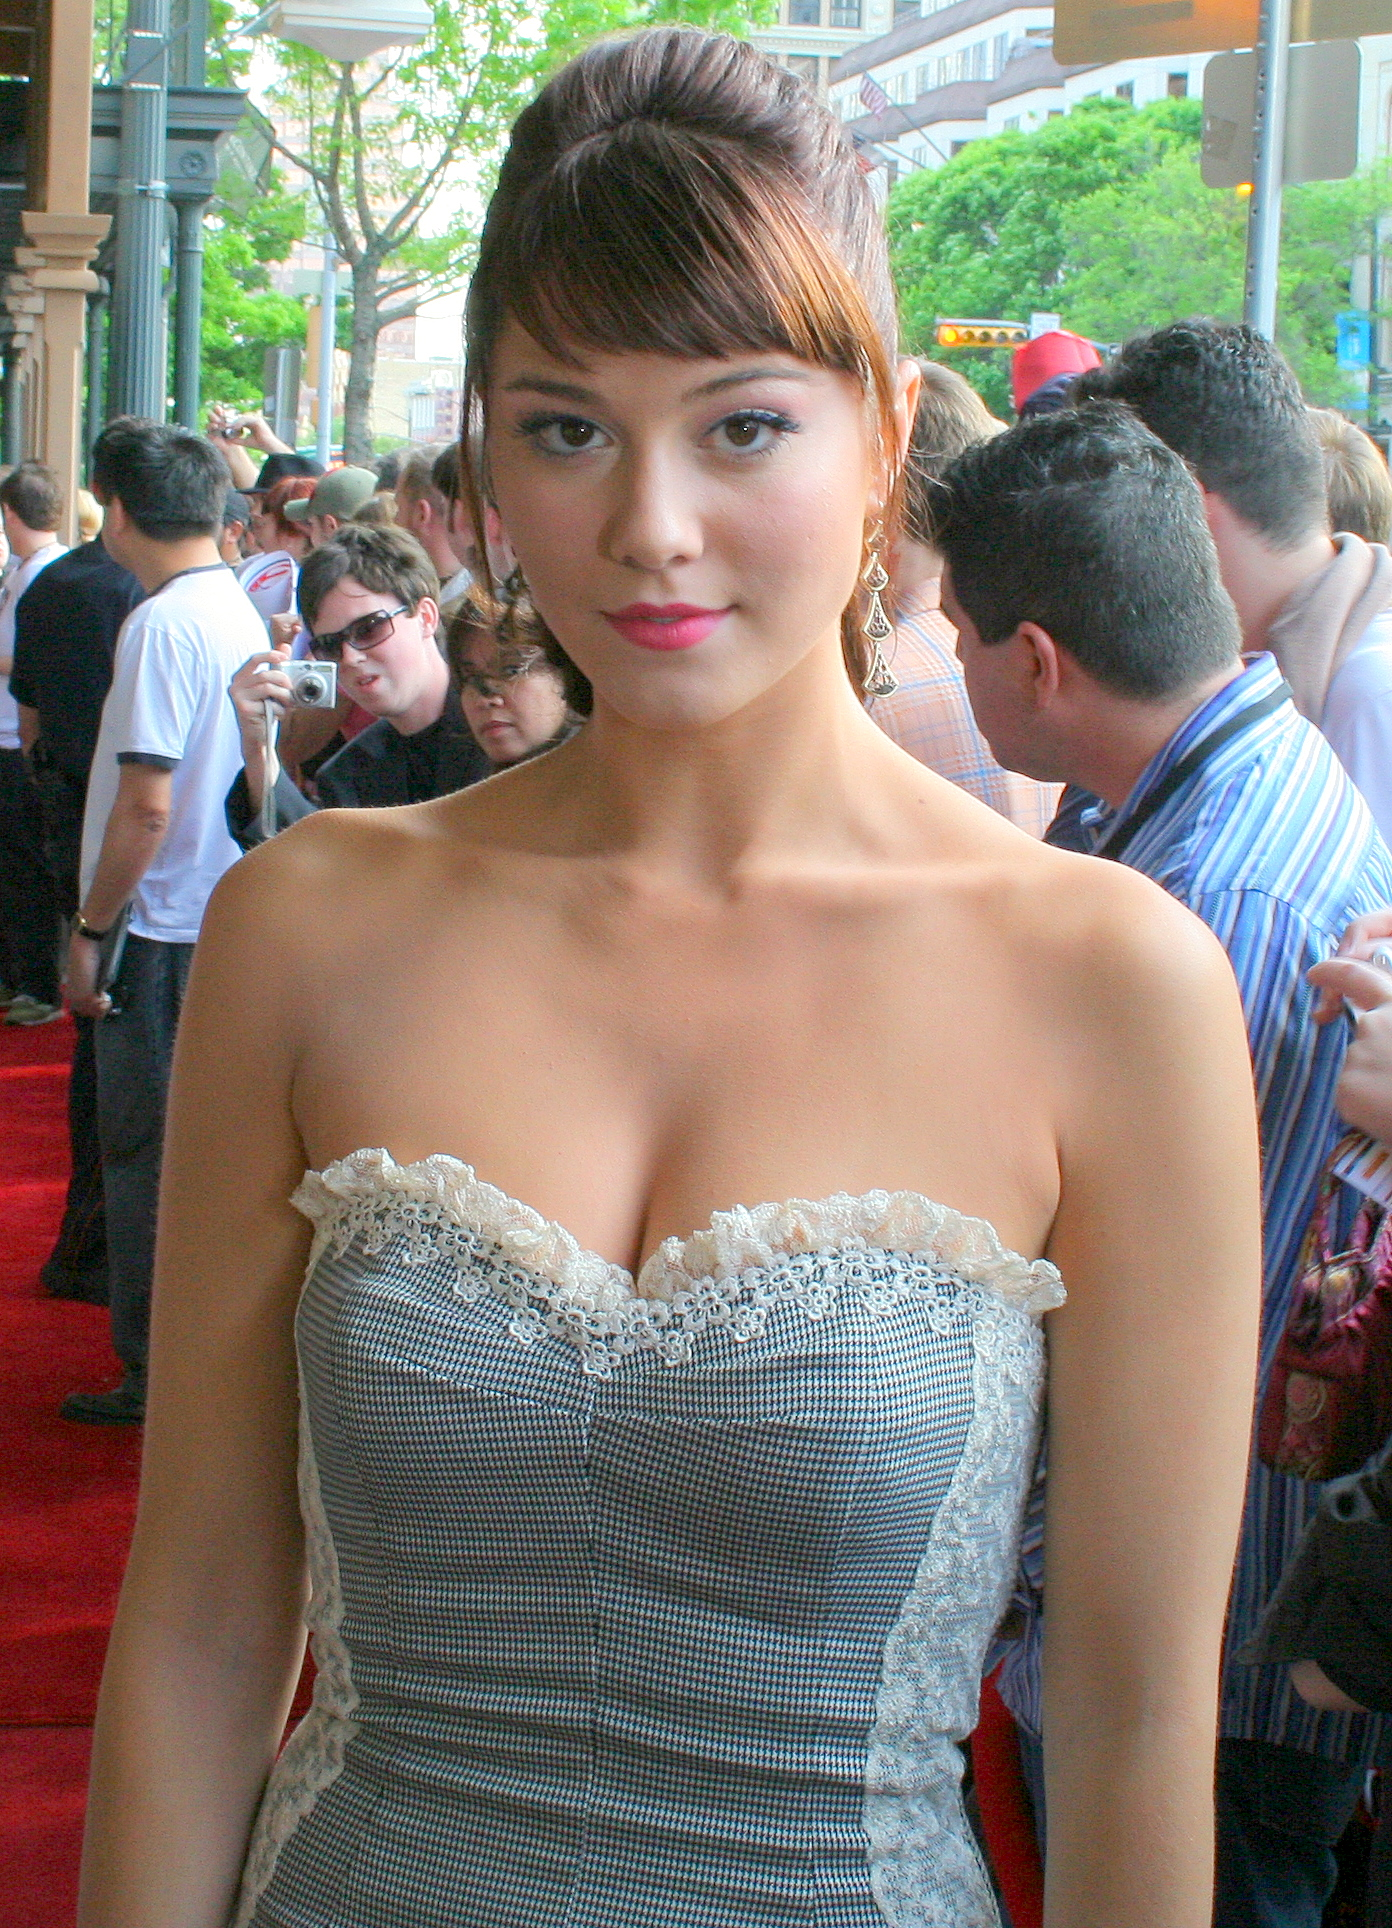 http://upload.wikimedia.org/wikipedia/commons/c/c9/Mary_Elizabeth_Winstead_2.jpg